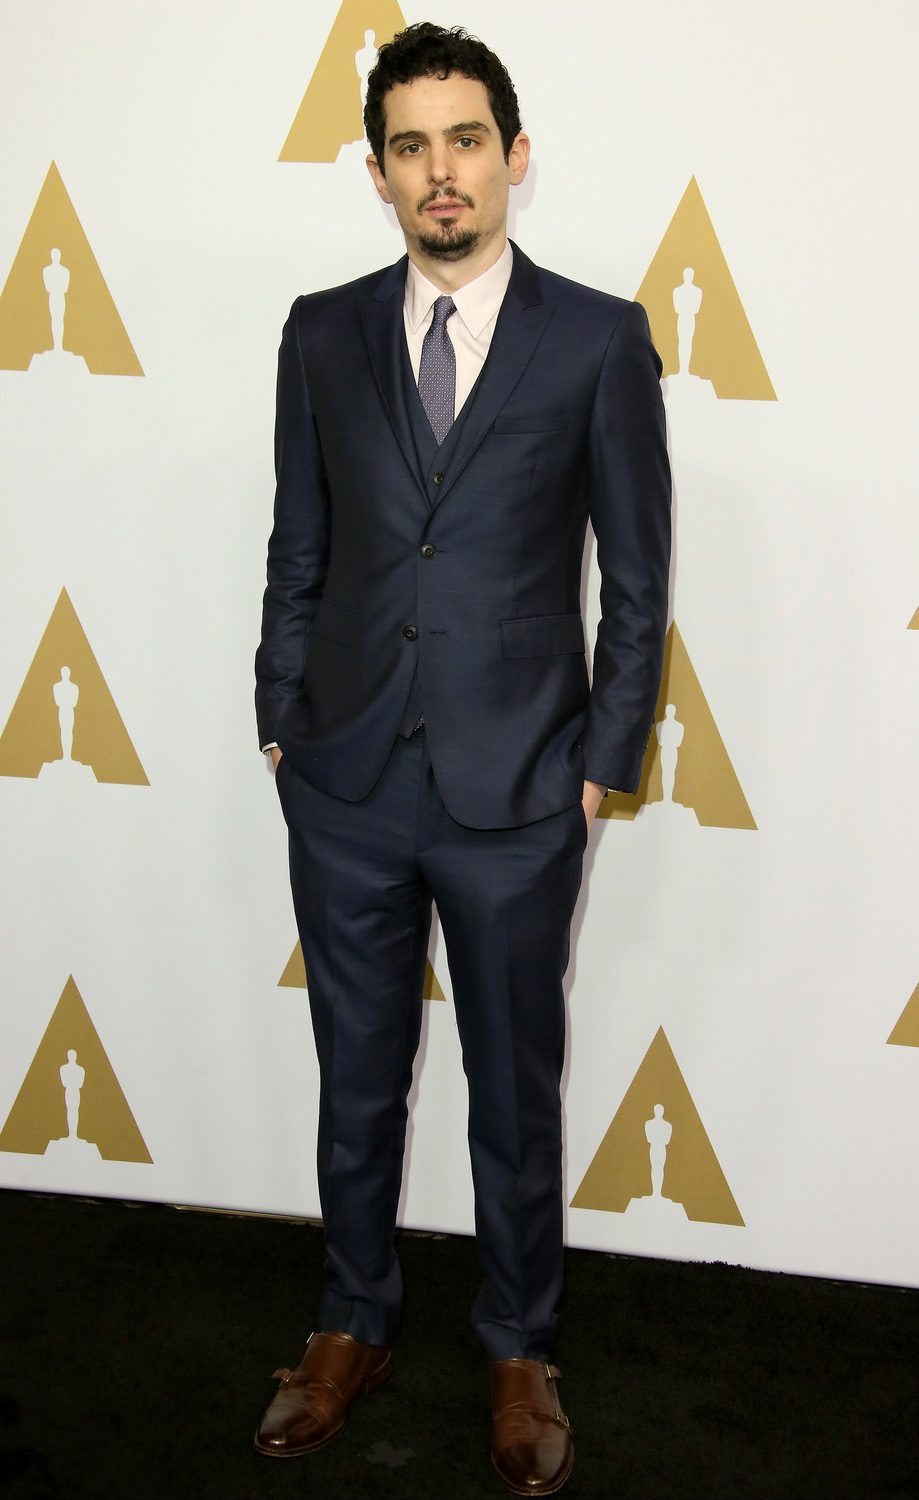 Damien Chazelle at the 2017 Annual Academy Awards Nominee Luncheon